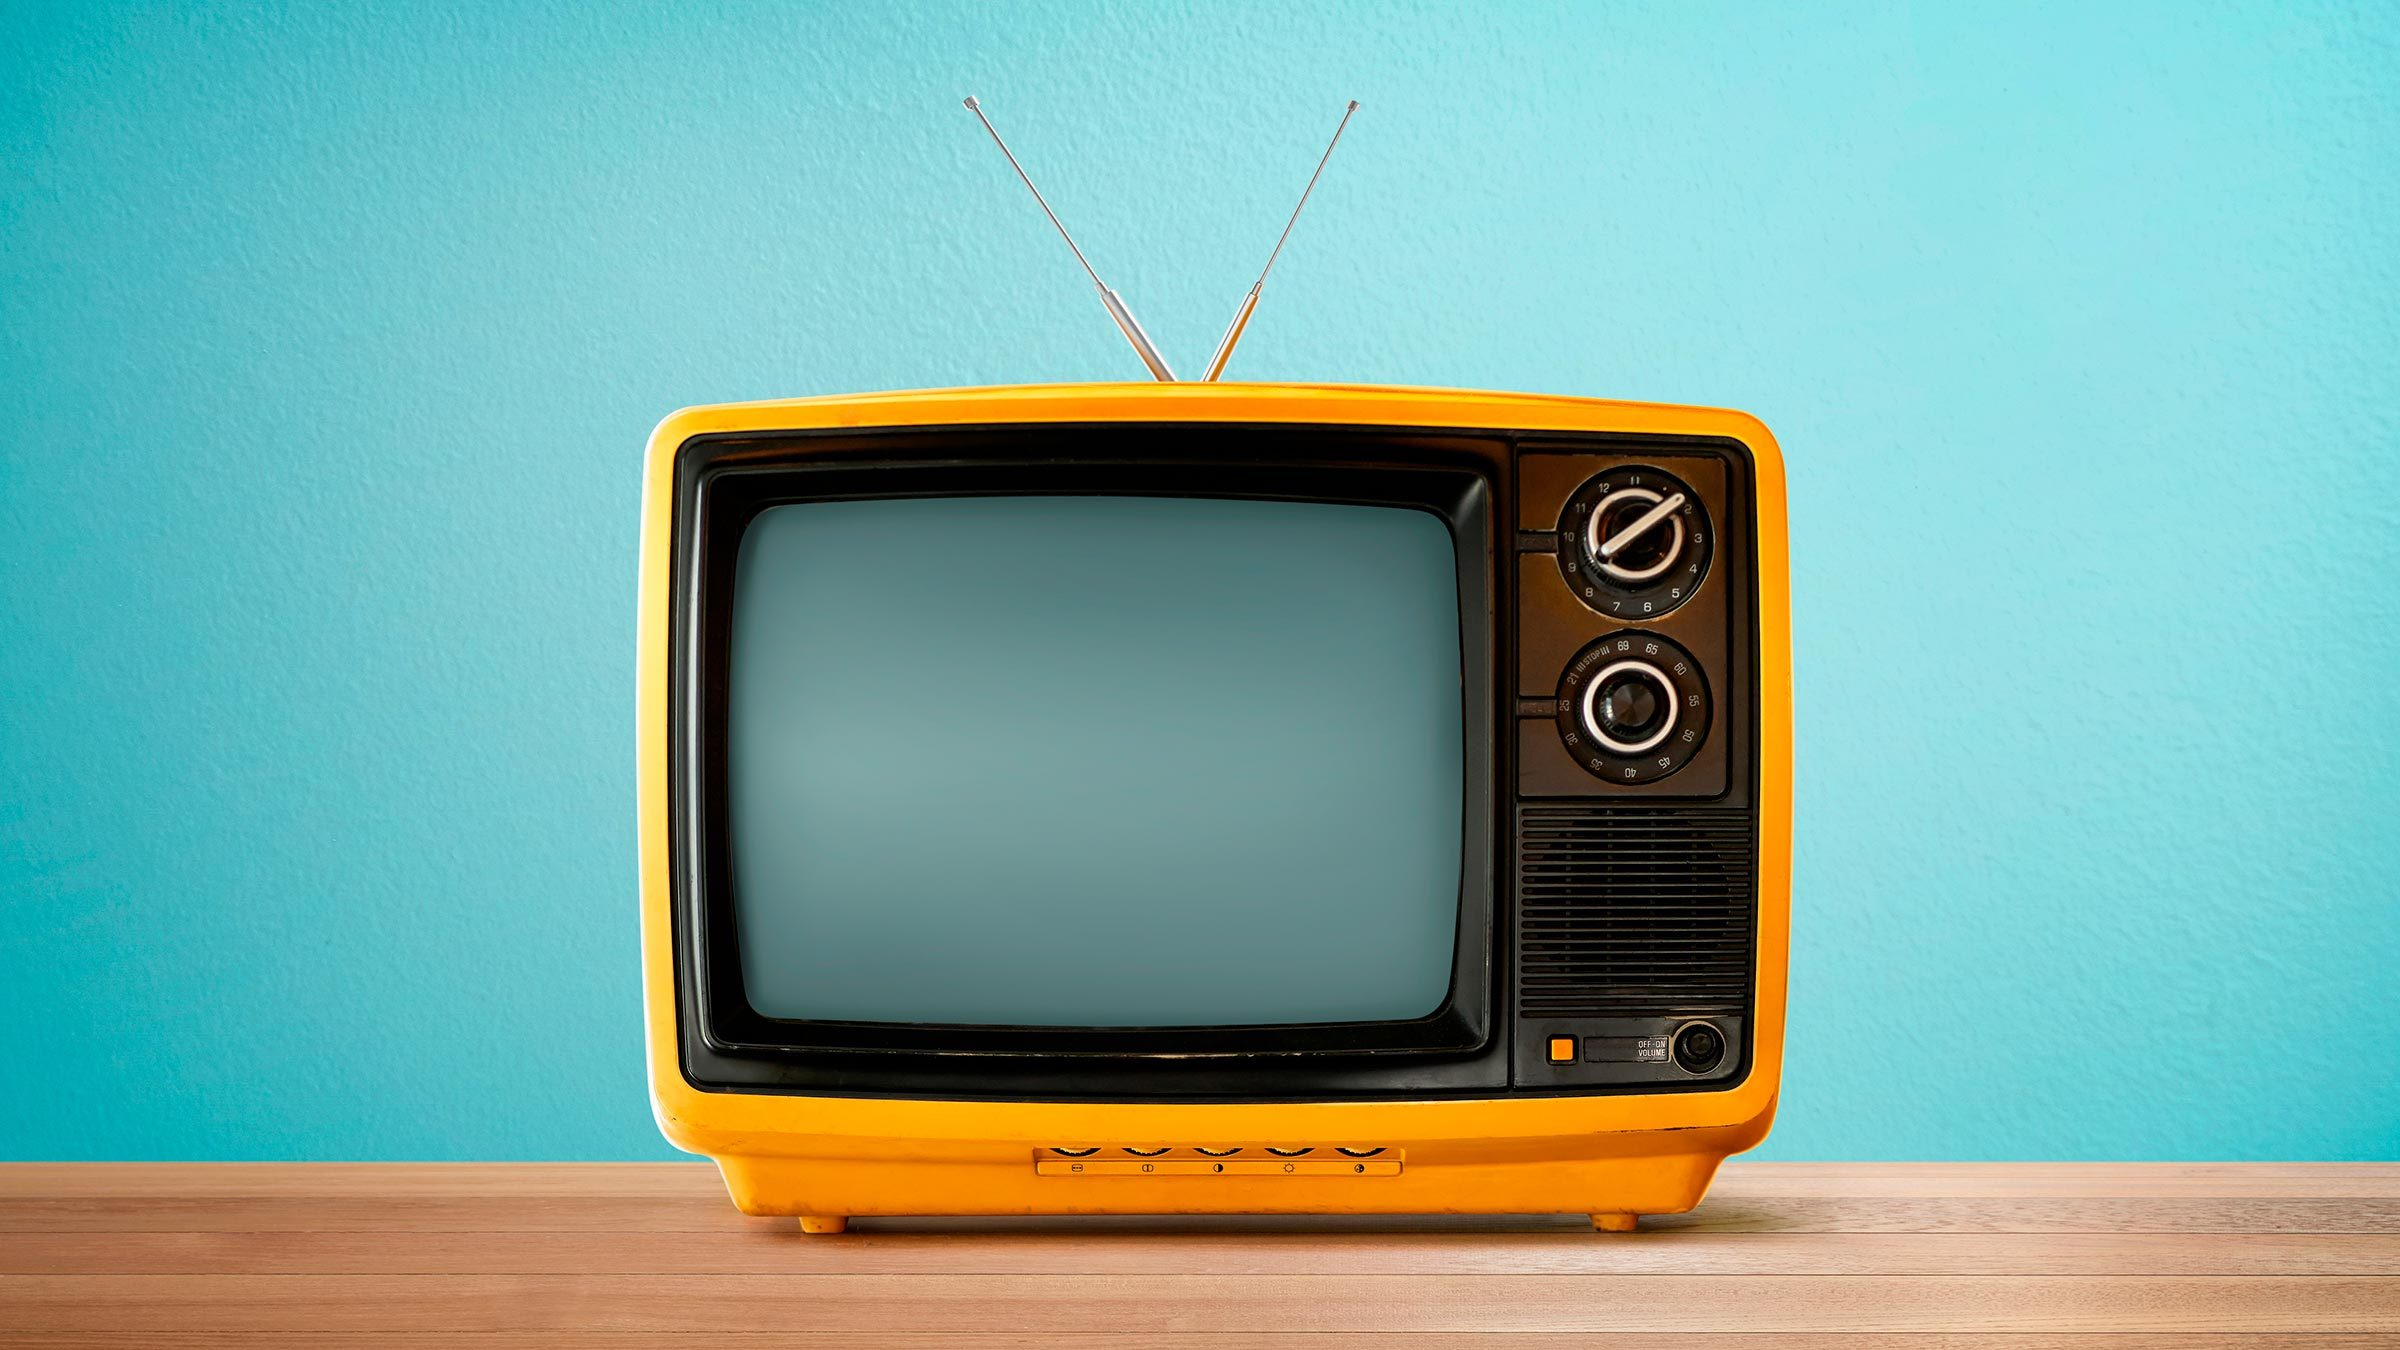 Yellow Orange color old vintage retro Television on wood table with mint blue background